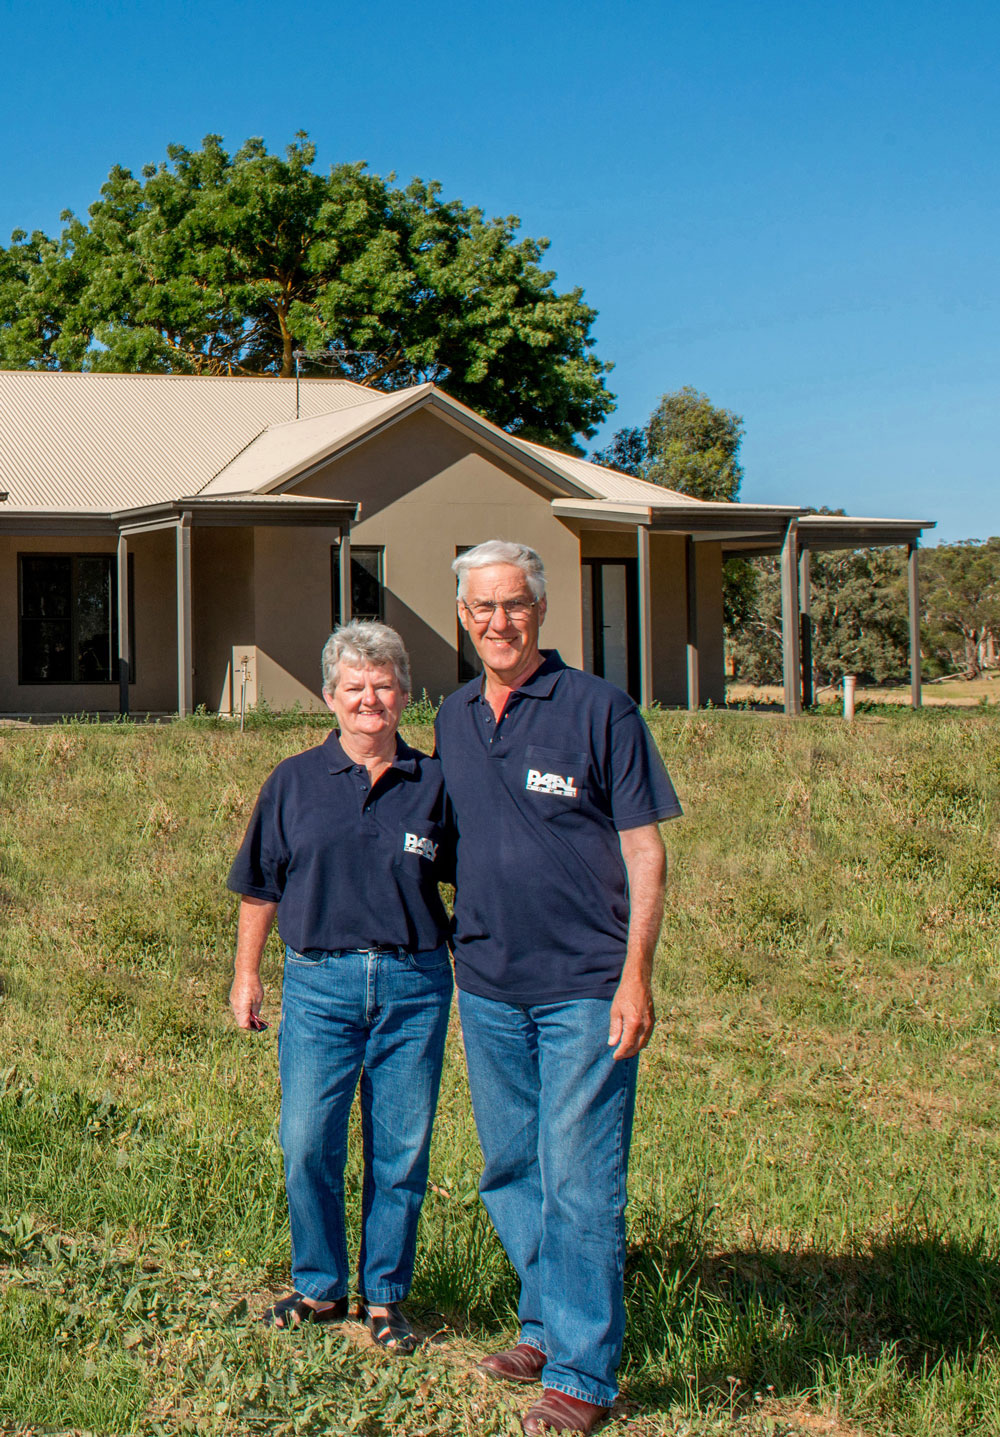 The Marshmans had the confidence to extensively modify the original Hawkesbury kit home design, with Paal's help.